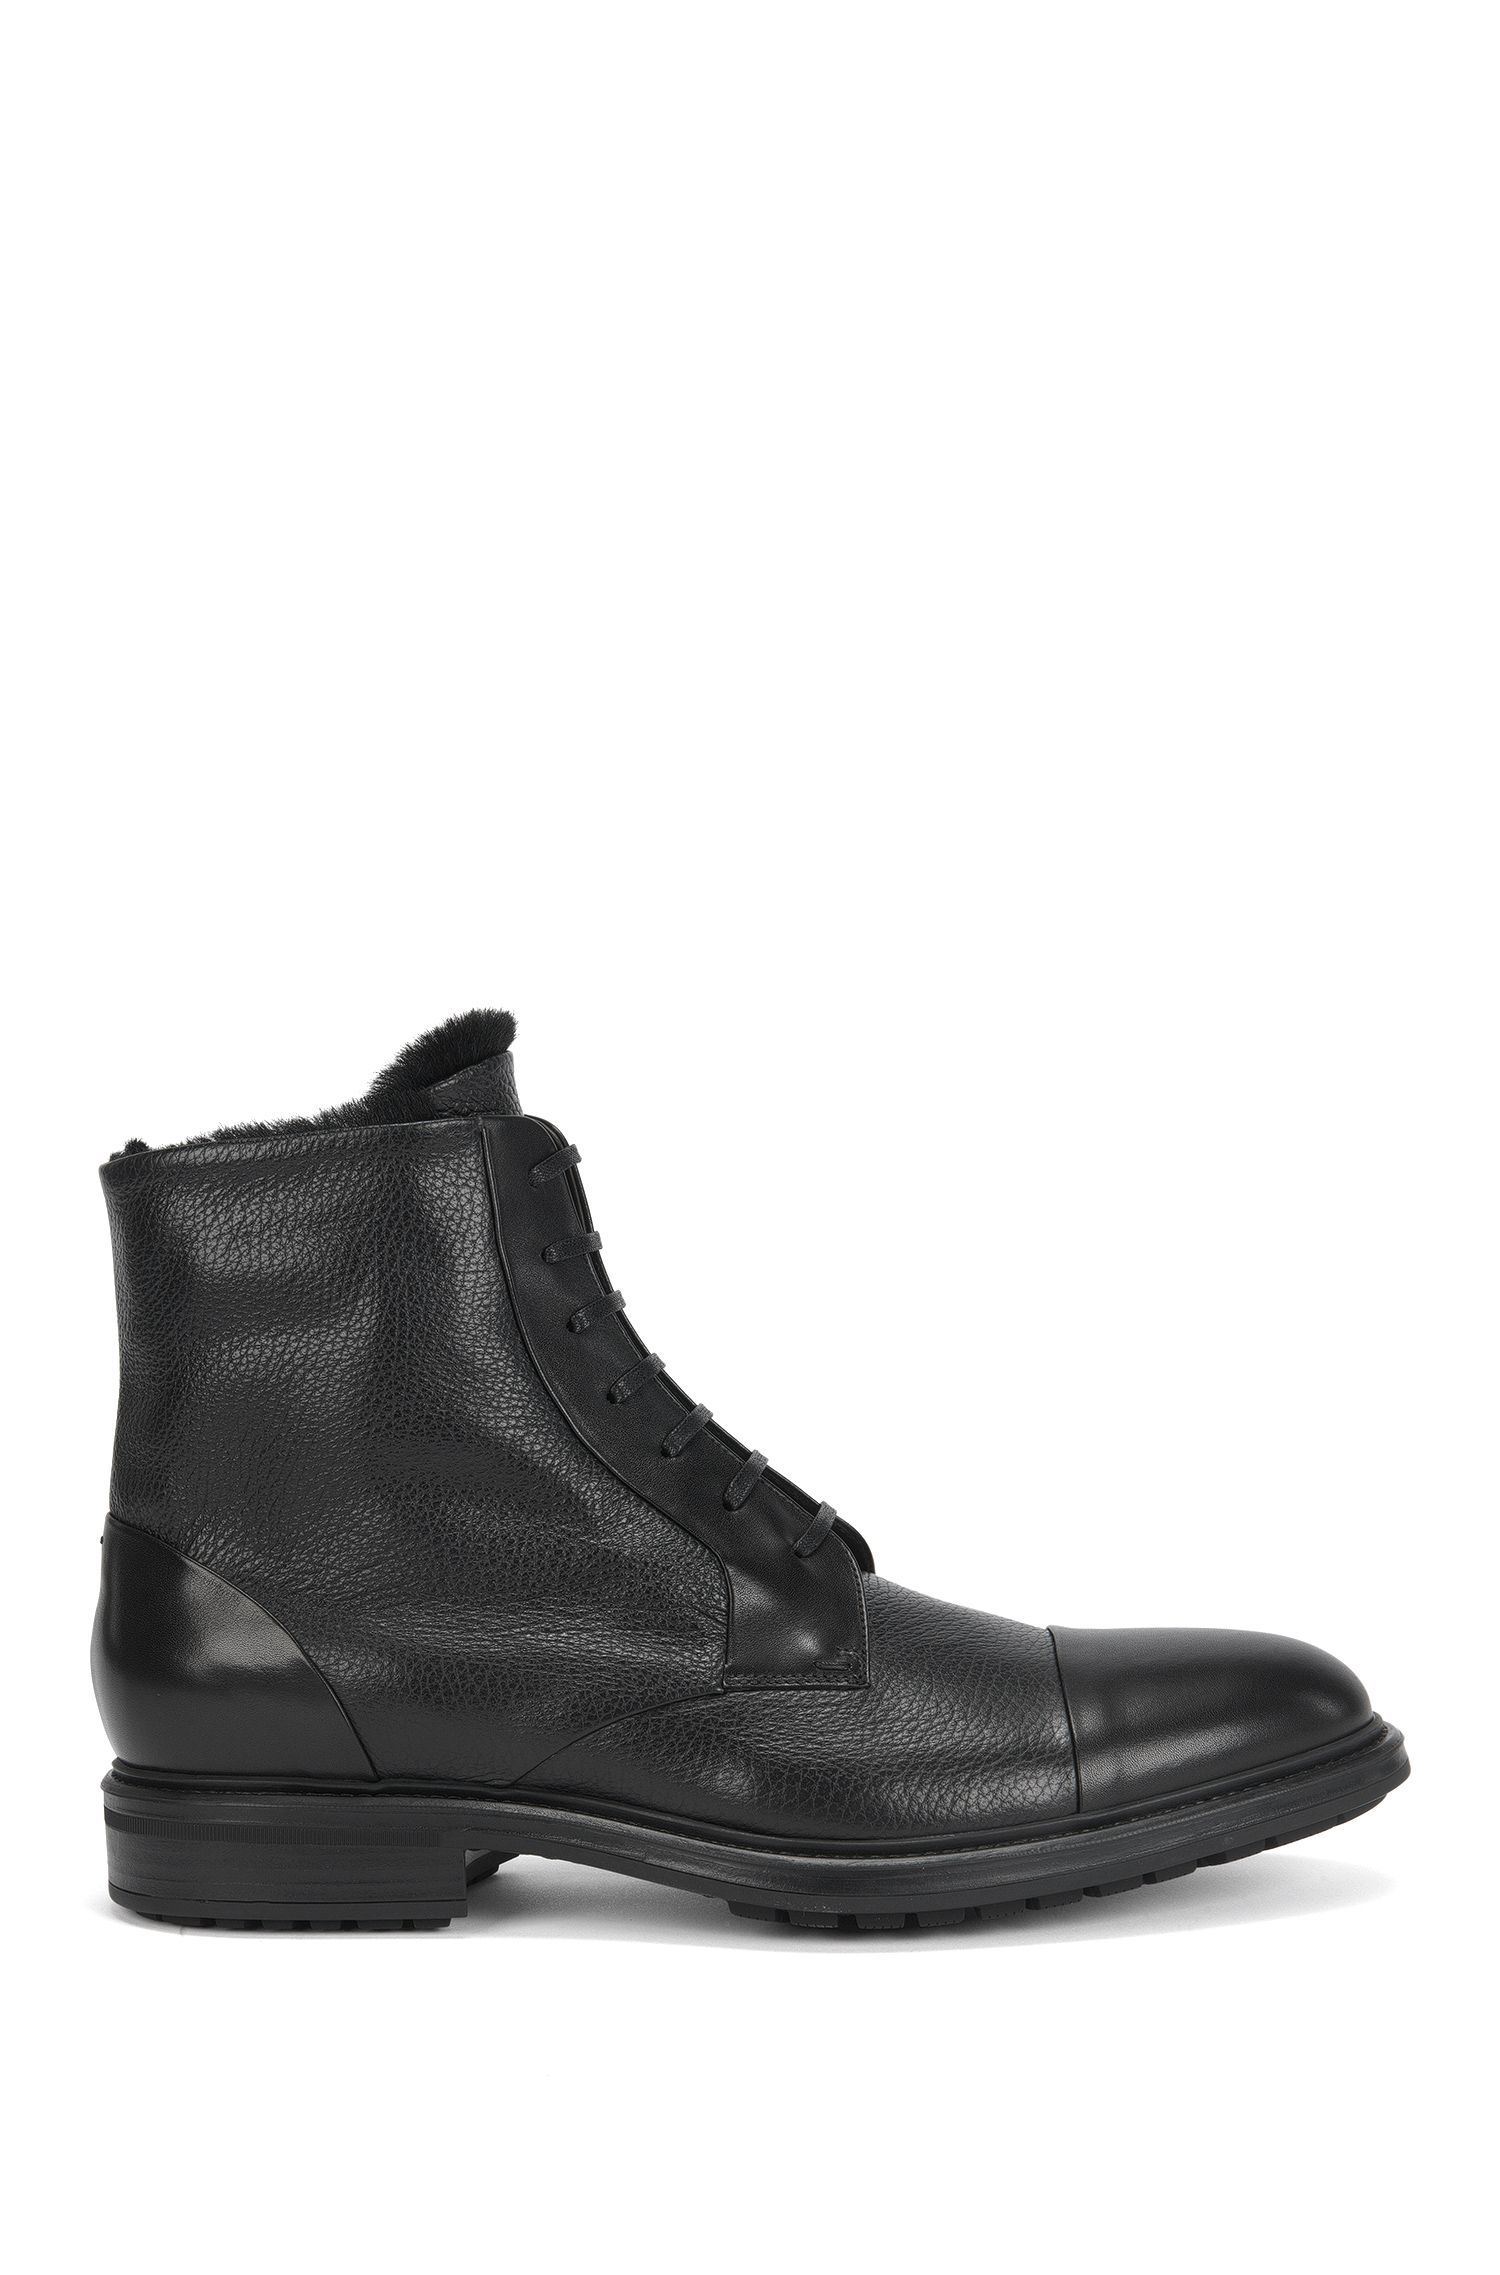 Leather Boot | Warsaw Halb Plgrct, Black